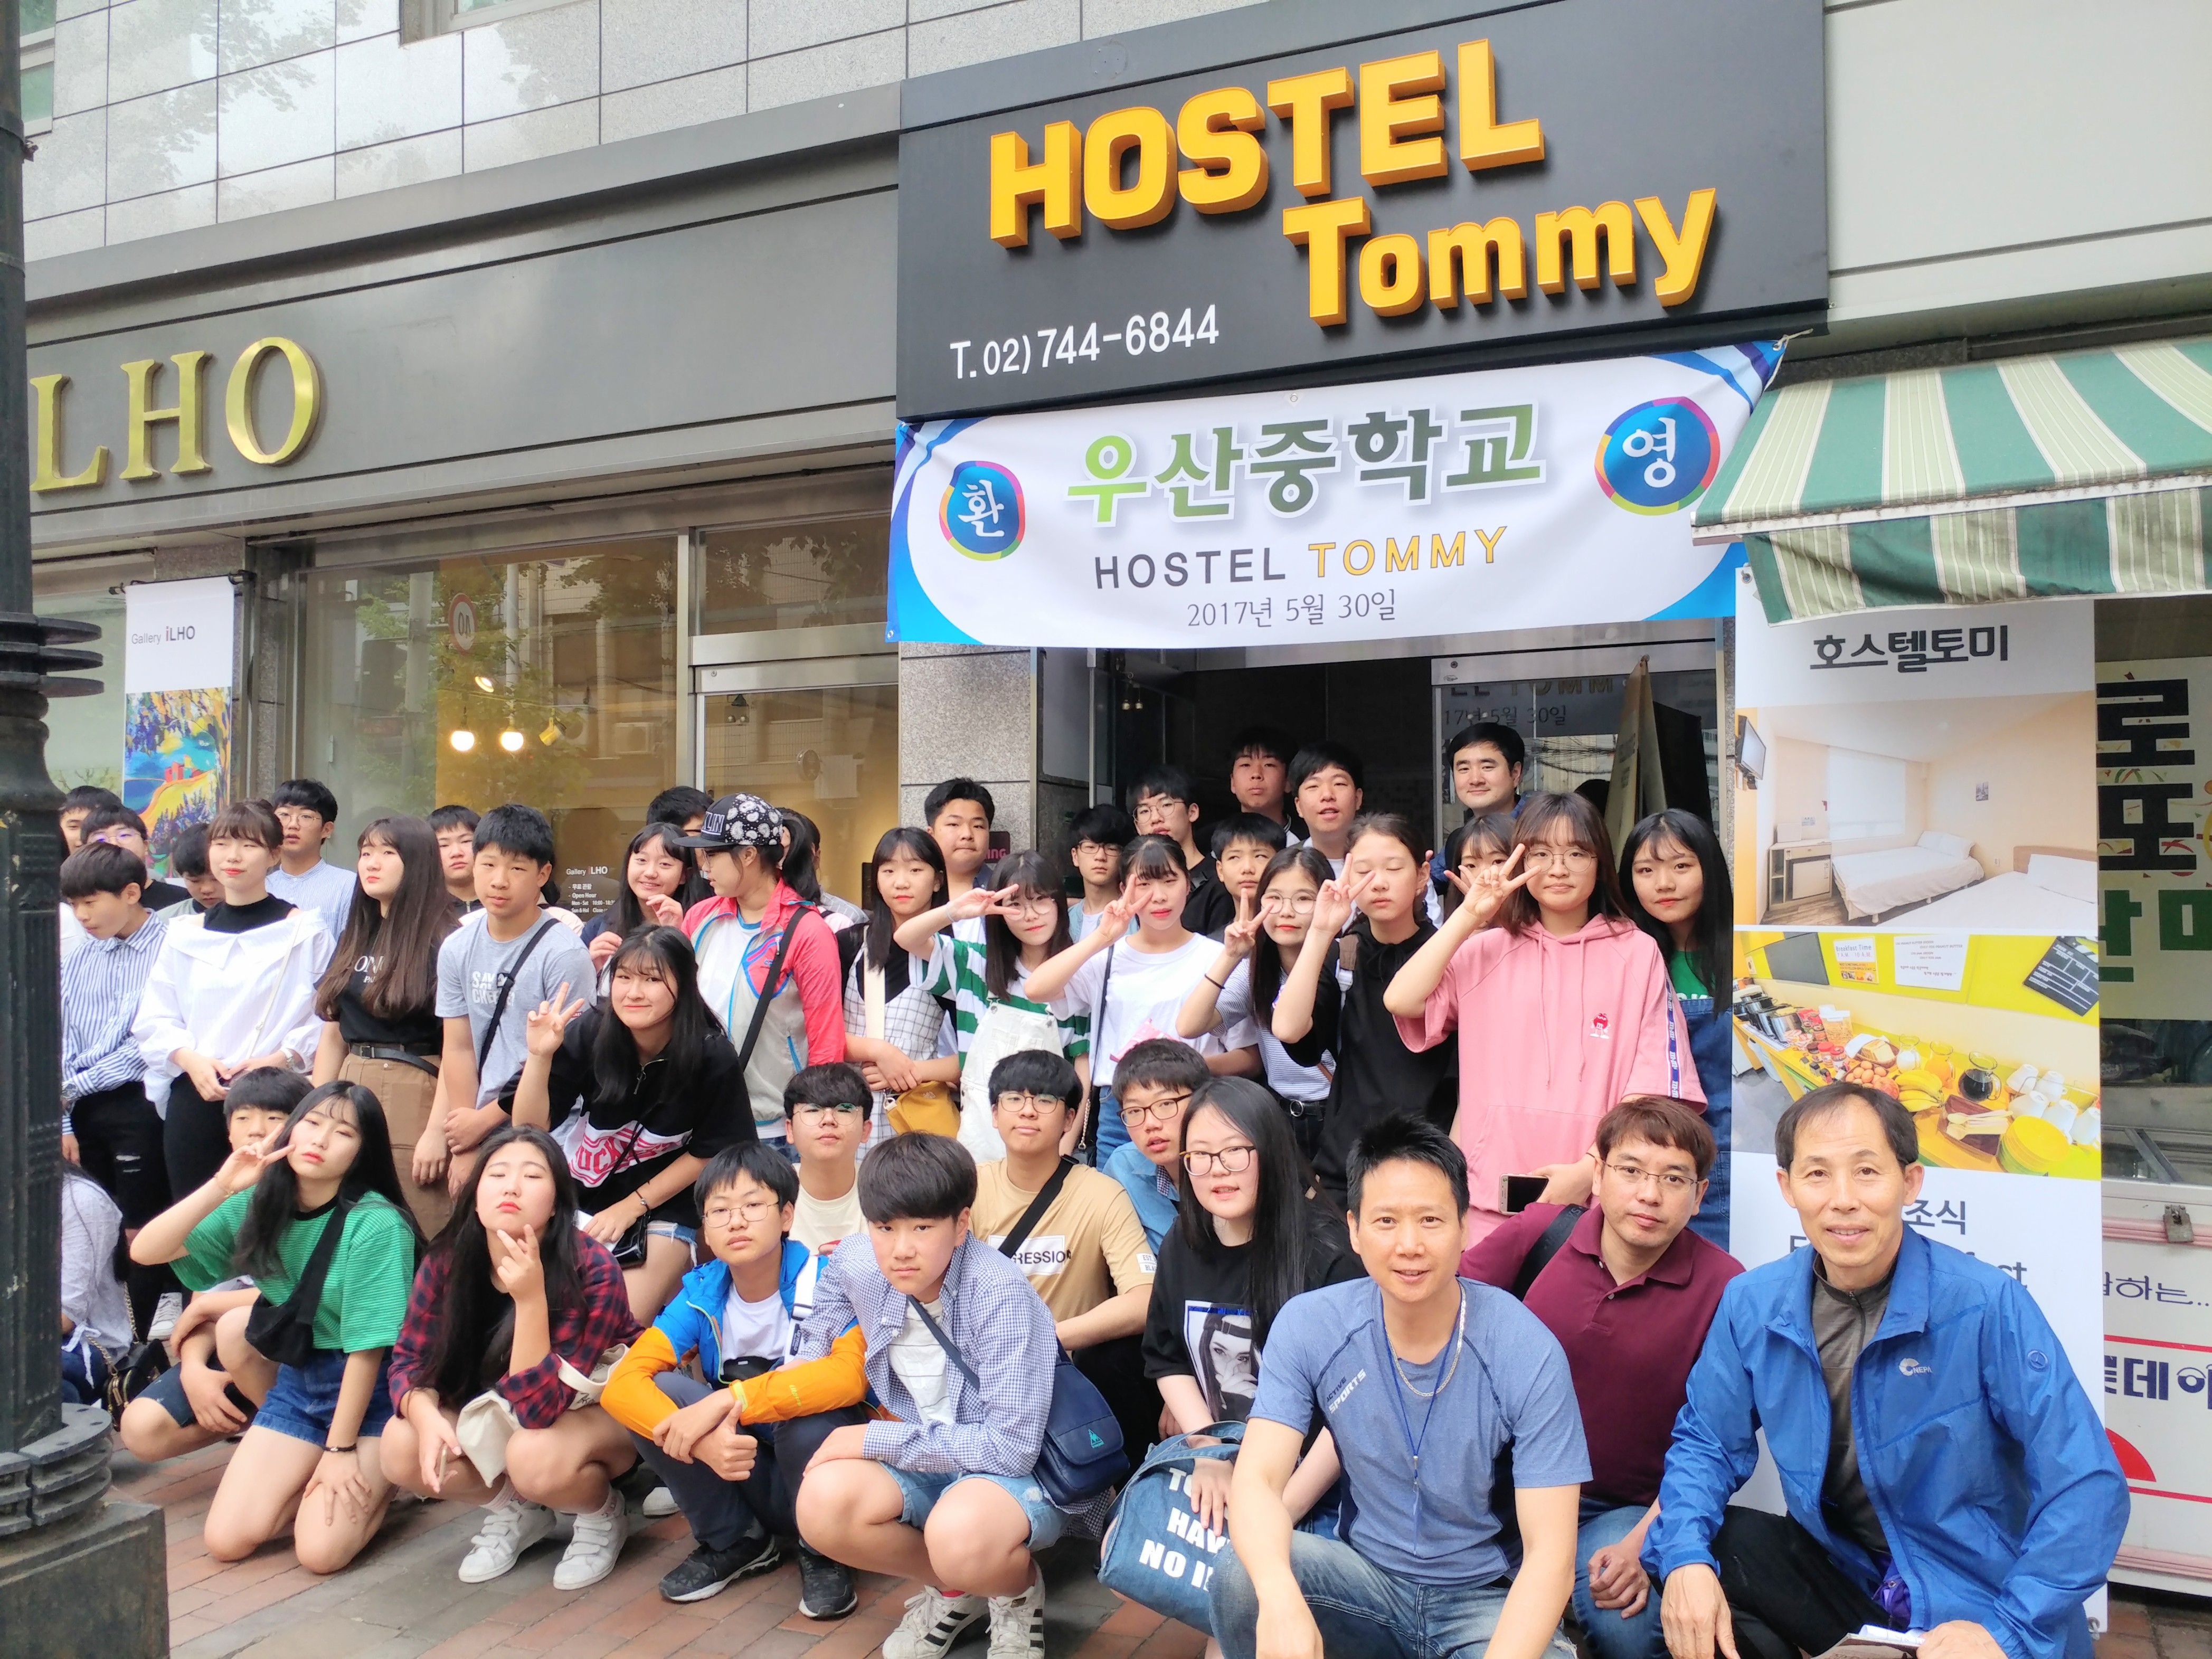 SCHOOL TRIP FROM USAN MIDDLE SCHOOL